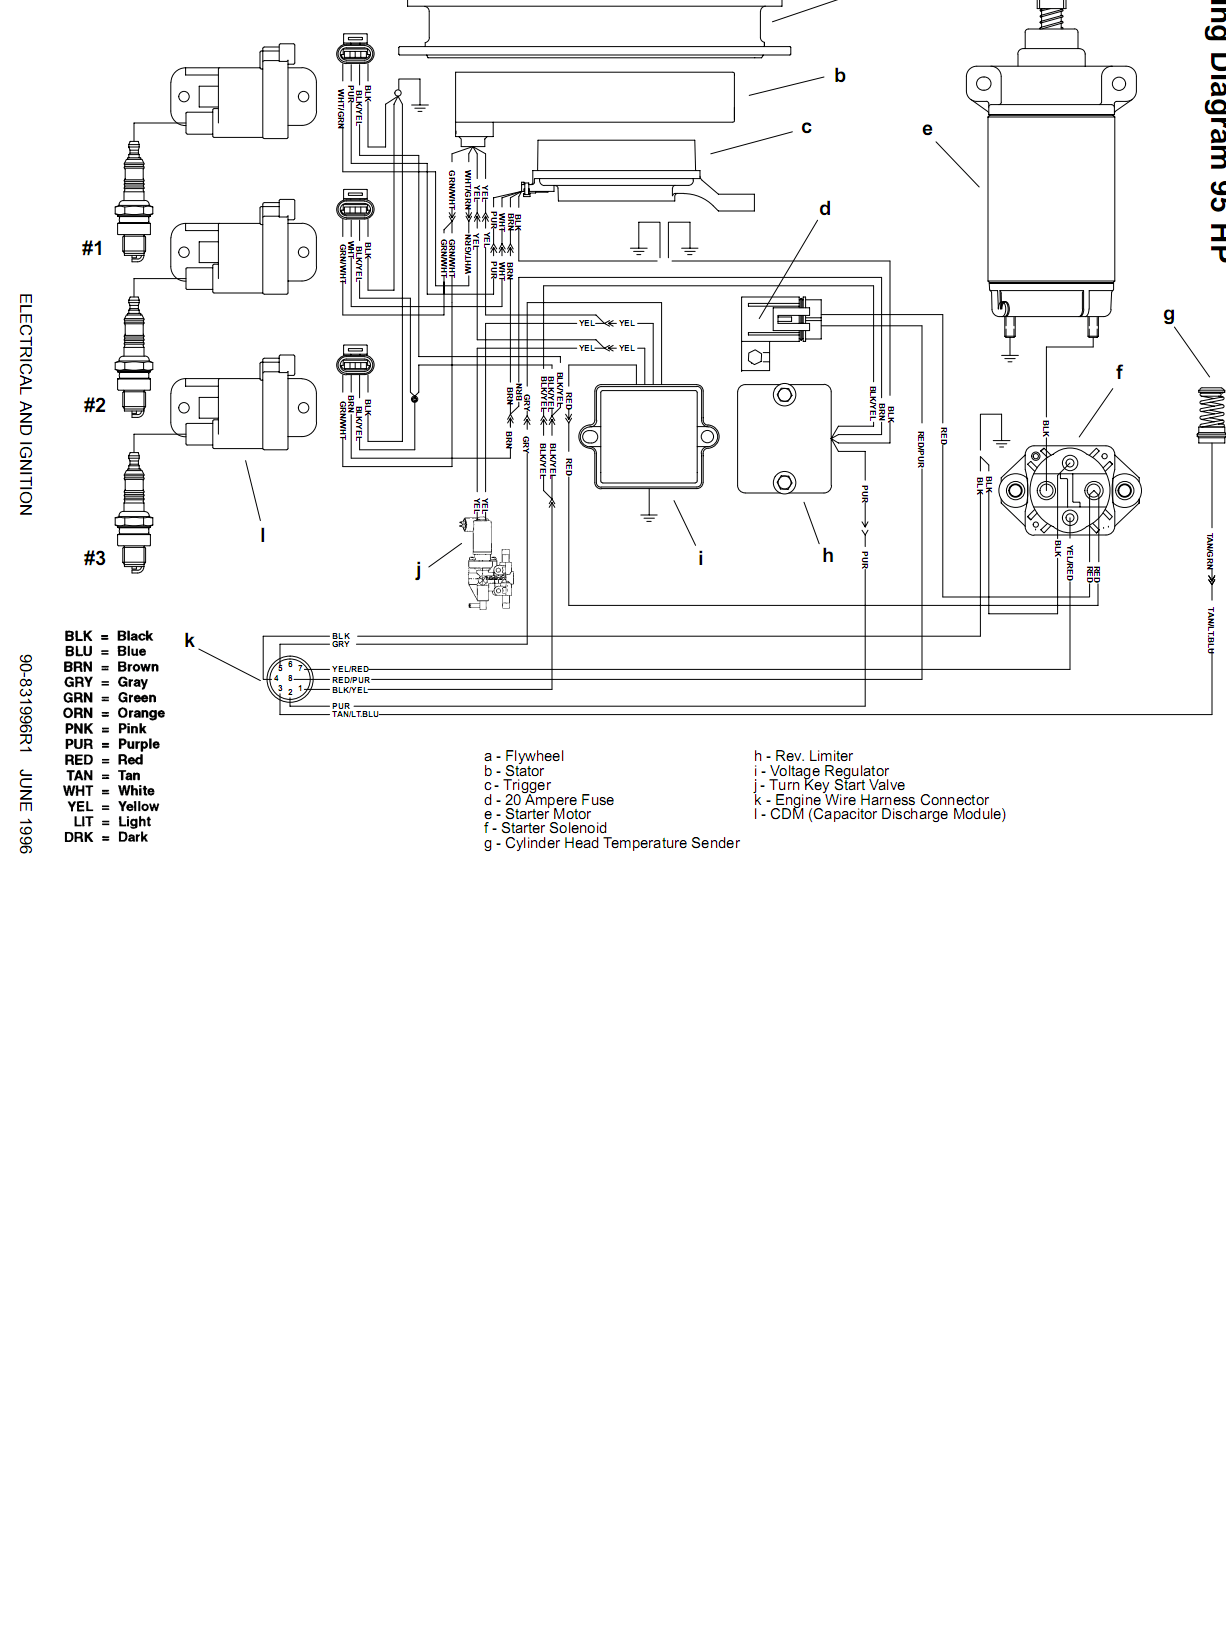 Searay Sunsport Wiring Diagram